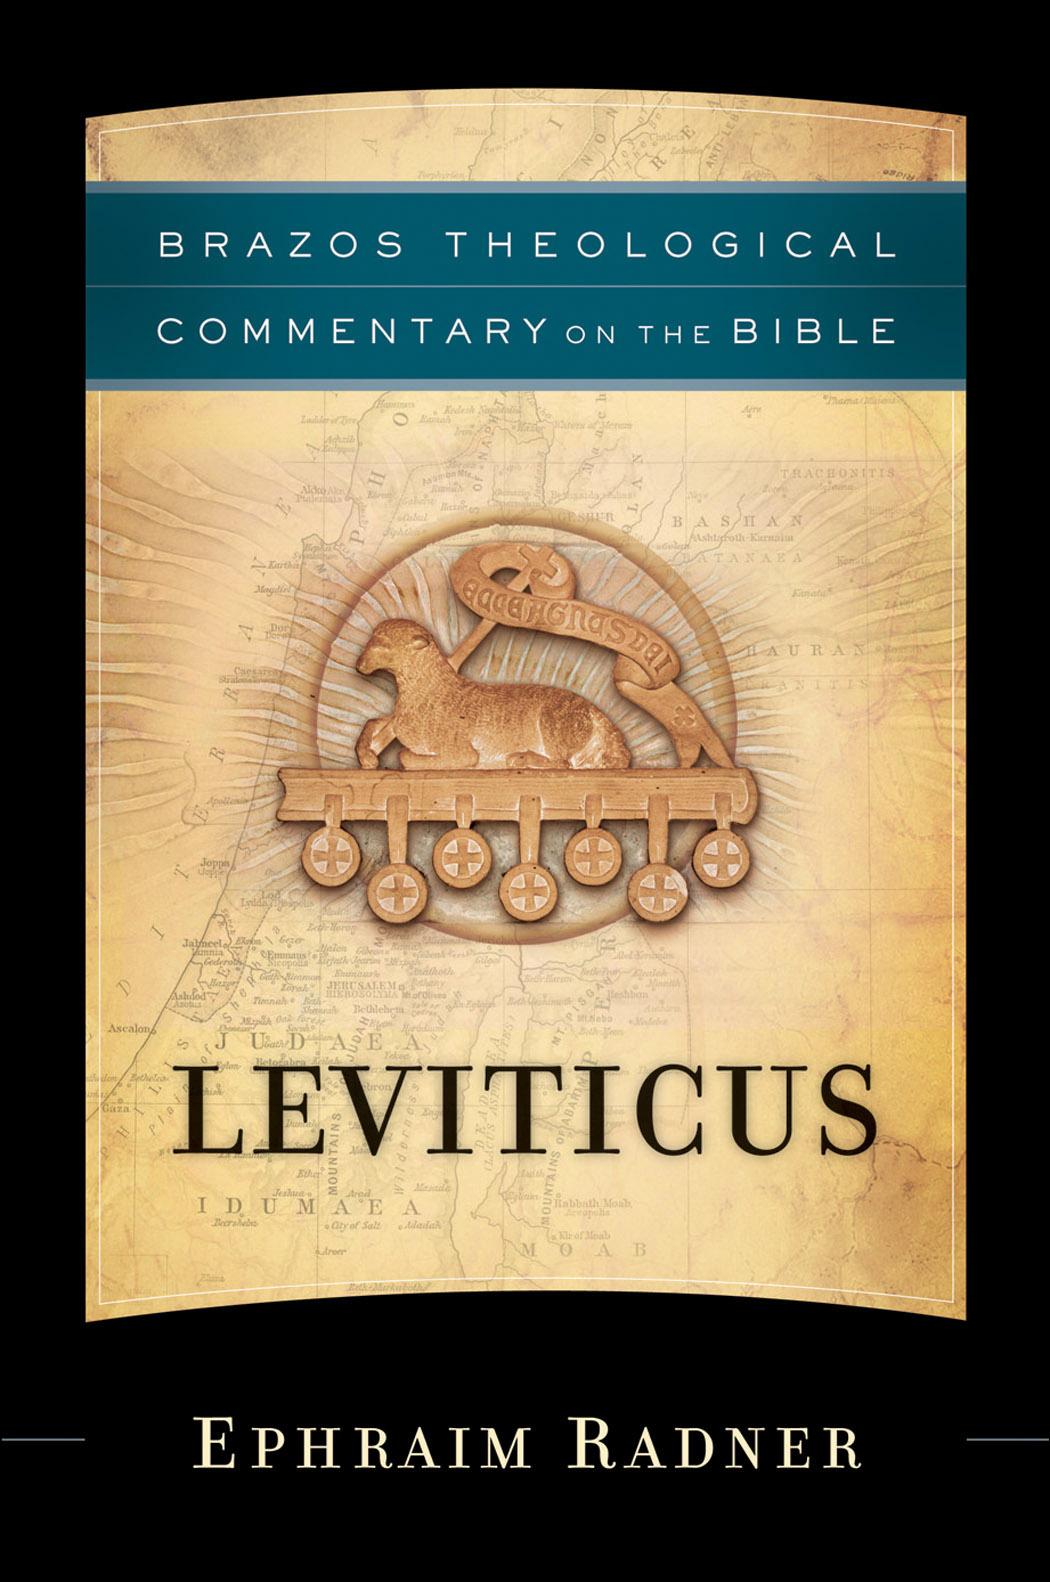 Leviticus (Brazos Theological Commentary on the Bible)